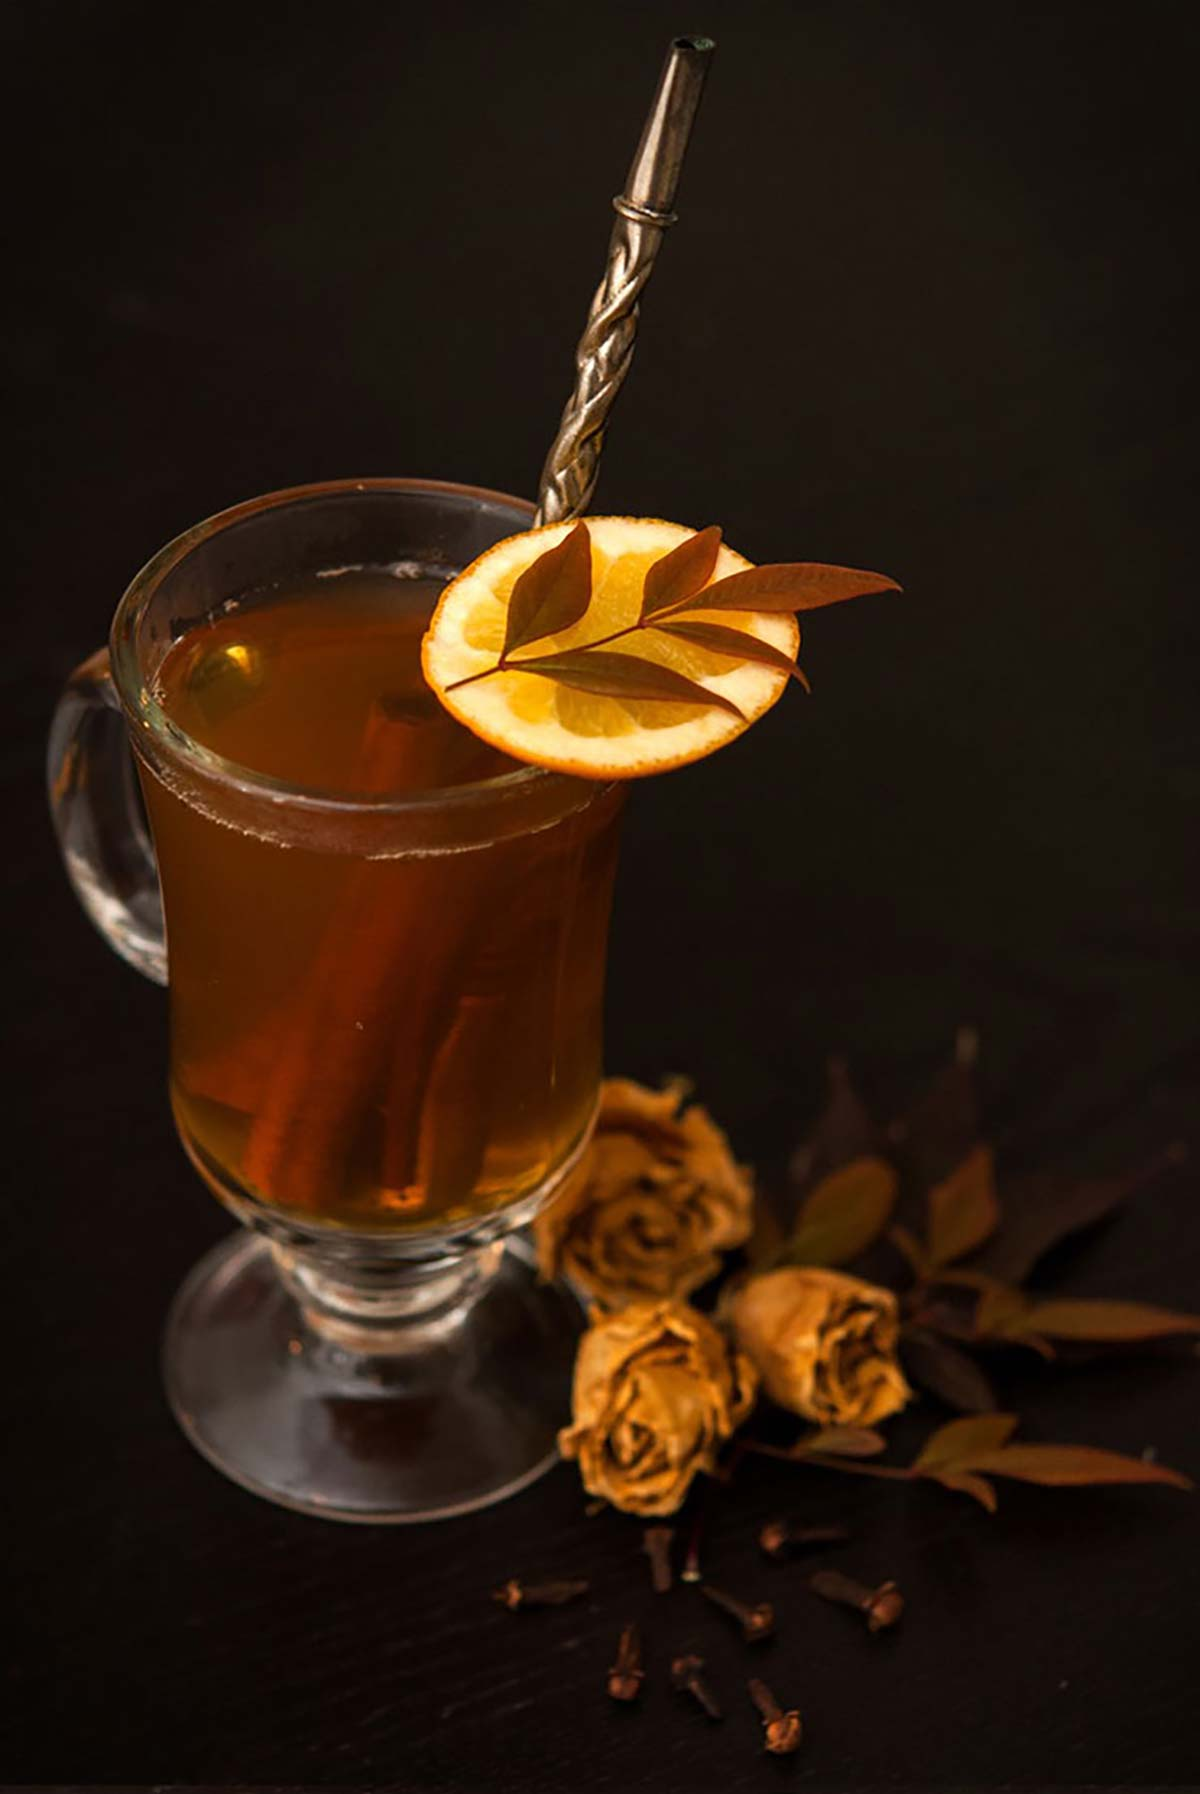 A transparent tea cup filled with Hot Toddy, with a silver tea infuser sitting inside with a few cinnamon sticks. It's garnished with an orange slice sitting on top and a little left played on top of the orange.